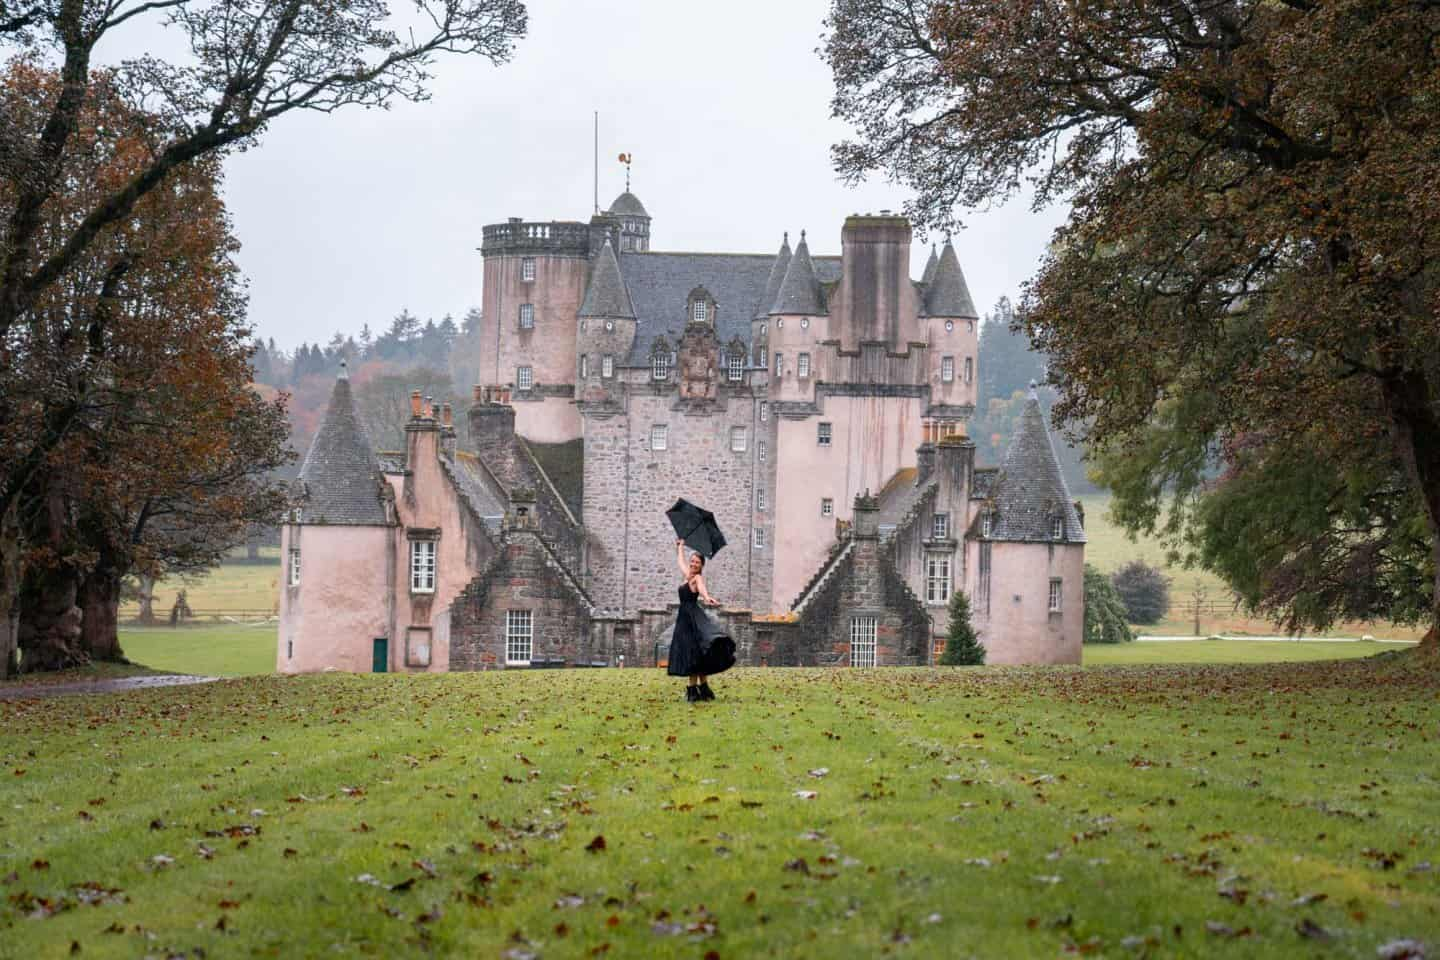 Dancing in the rain in front of Castle Fraser.